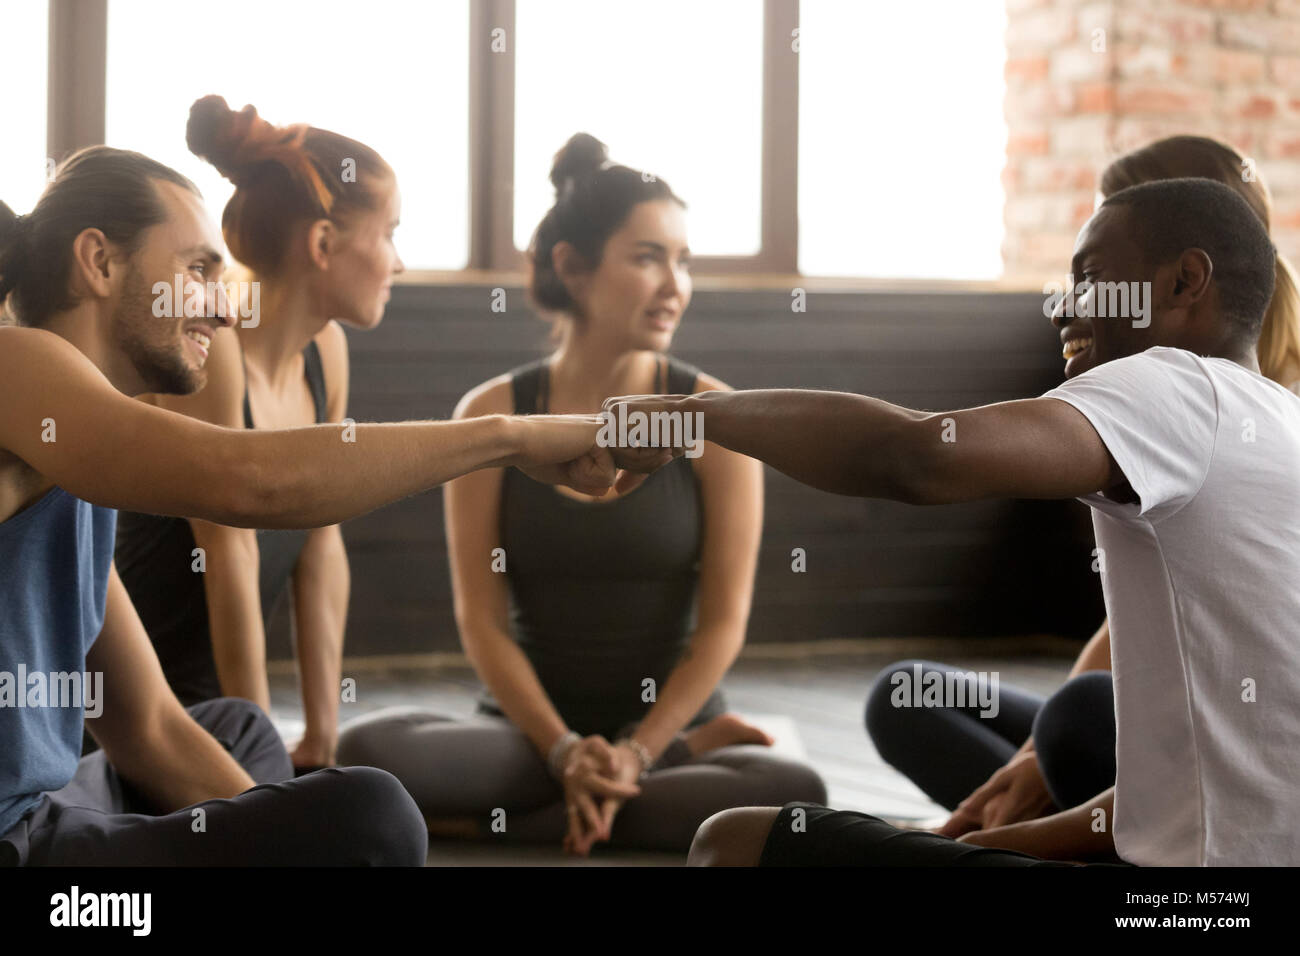 African american and caucasian men fist bumping at group trainin - Stock Image